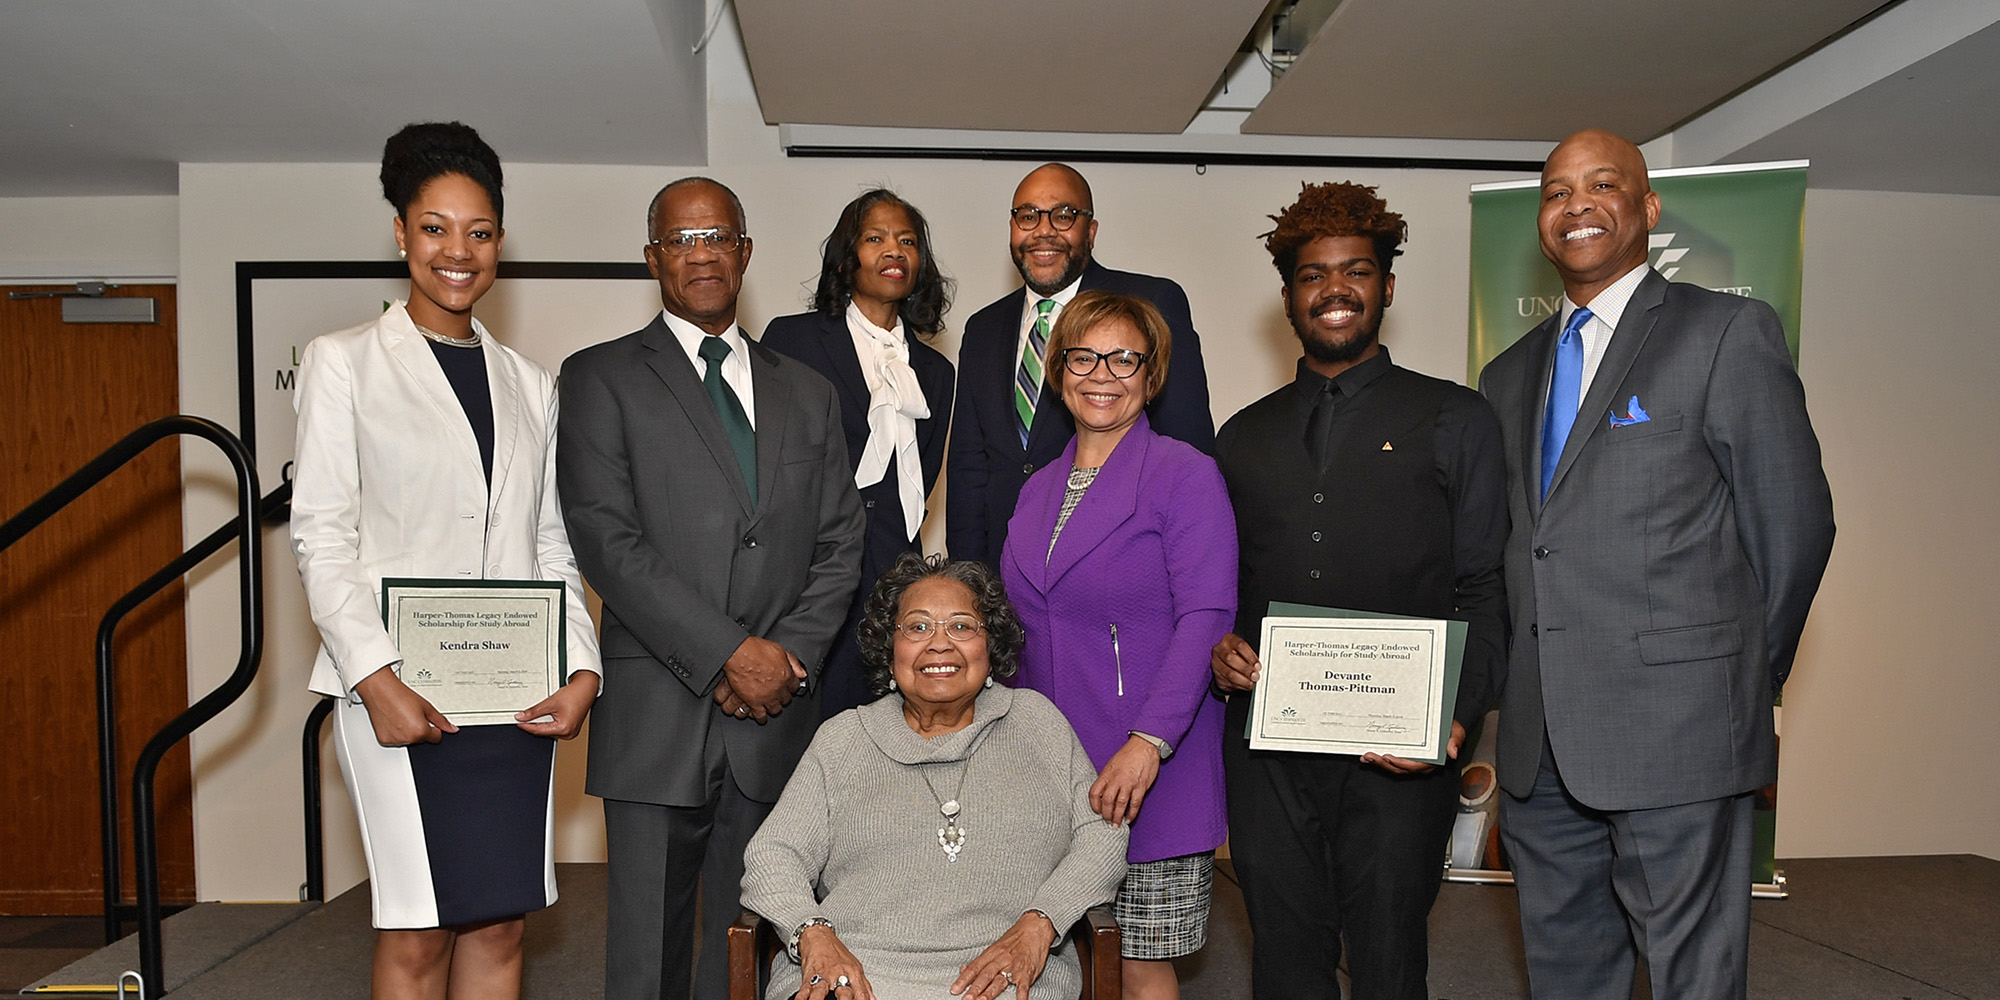 Kendra Shaw, left, and Devante Thomas-Pittman, second right, are the inaugural recipients of the Harper-Thomas Legacy Endowment for Study Abroad. The award honors Mary Harper, seated, and Henry Thomas, second left.